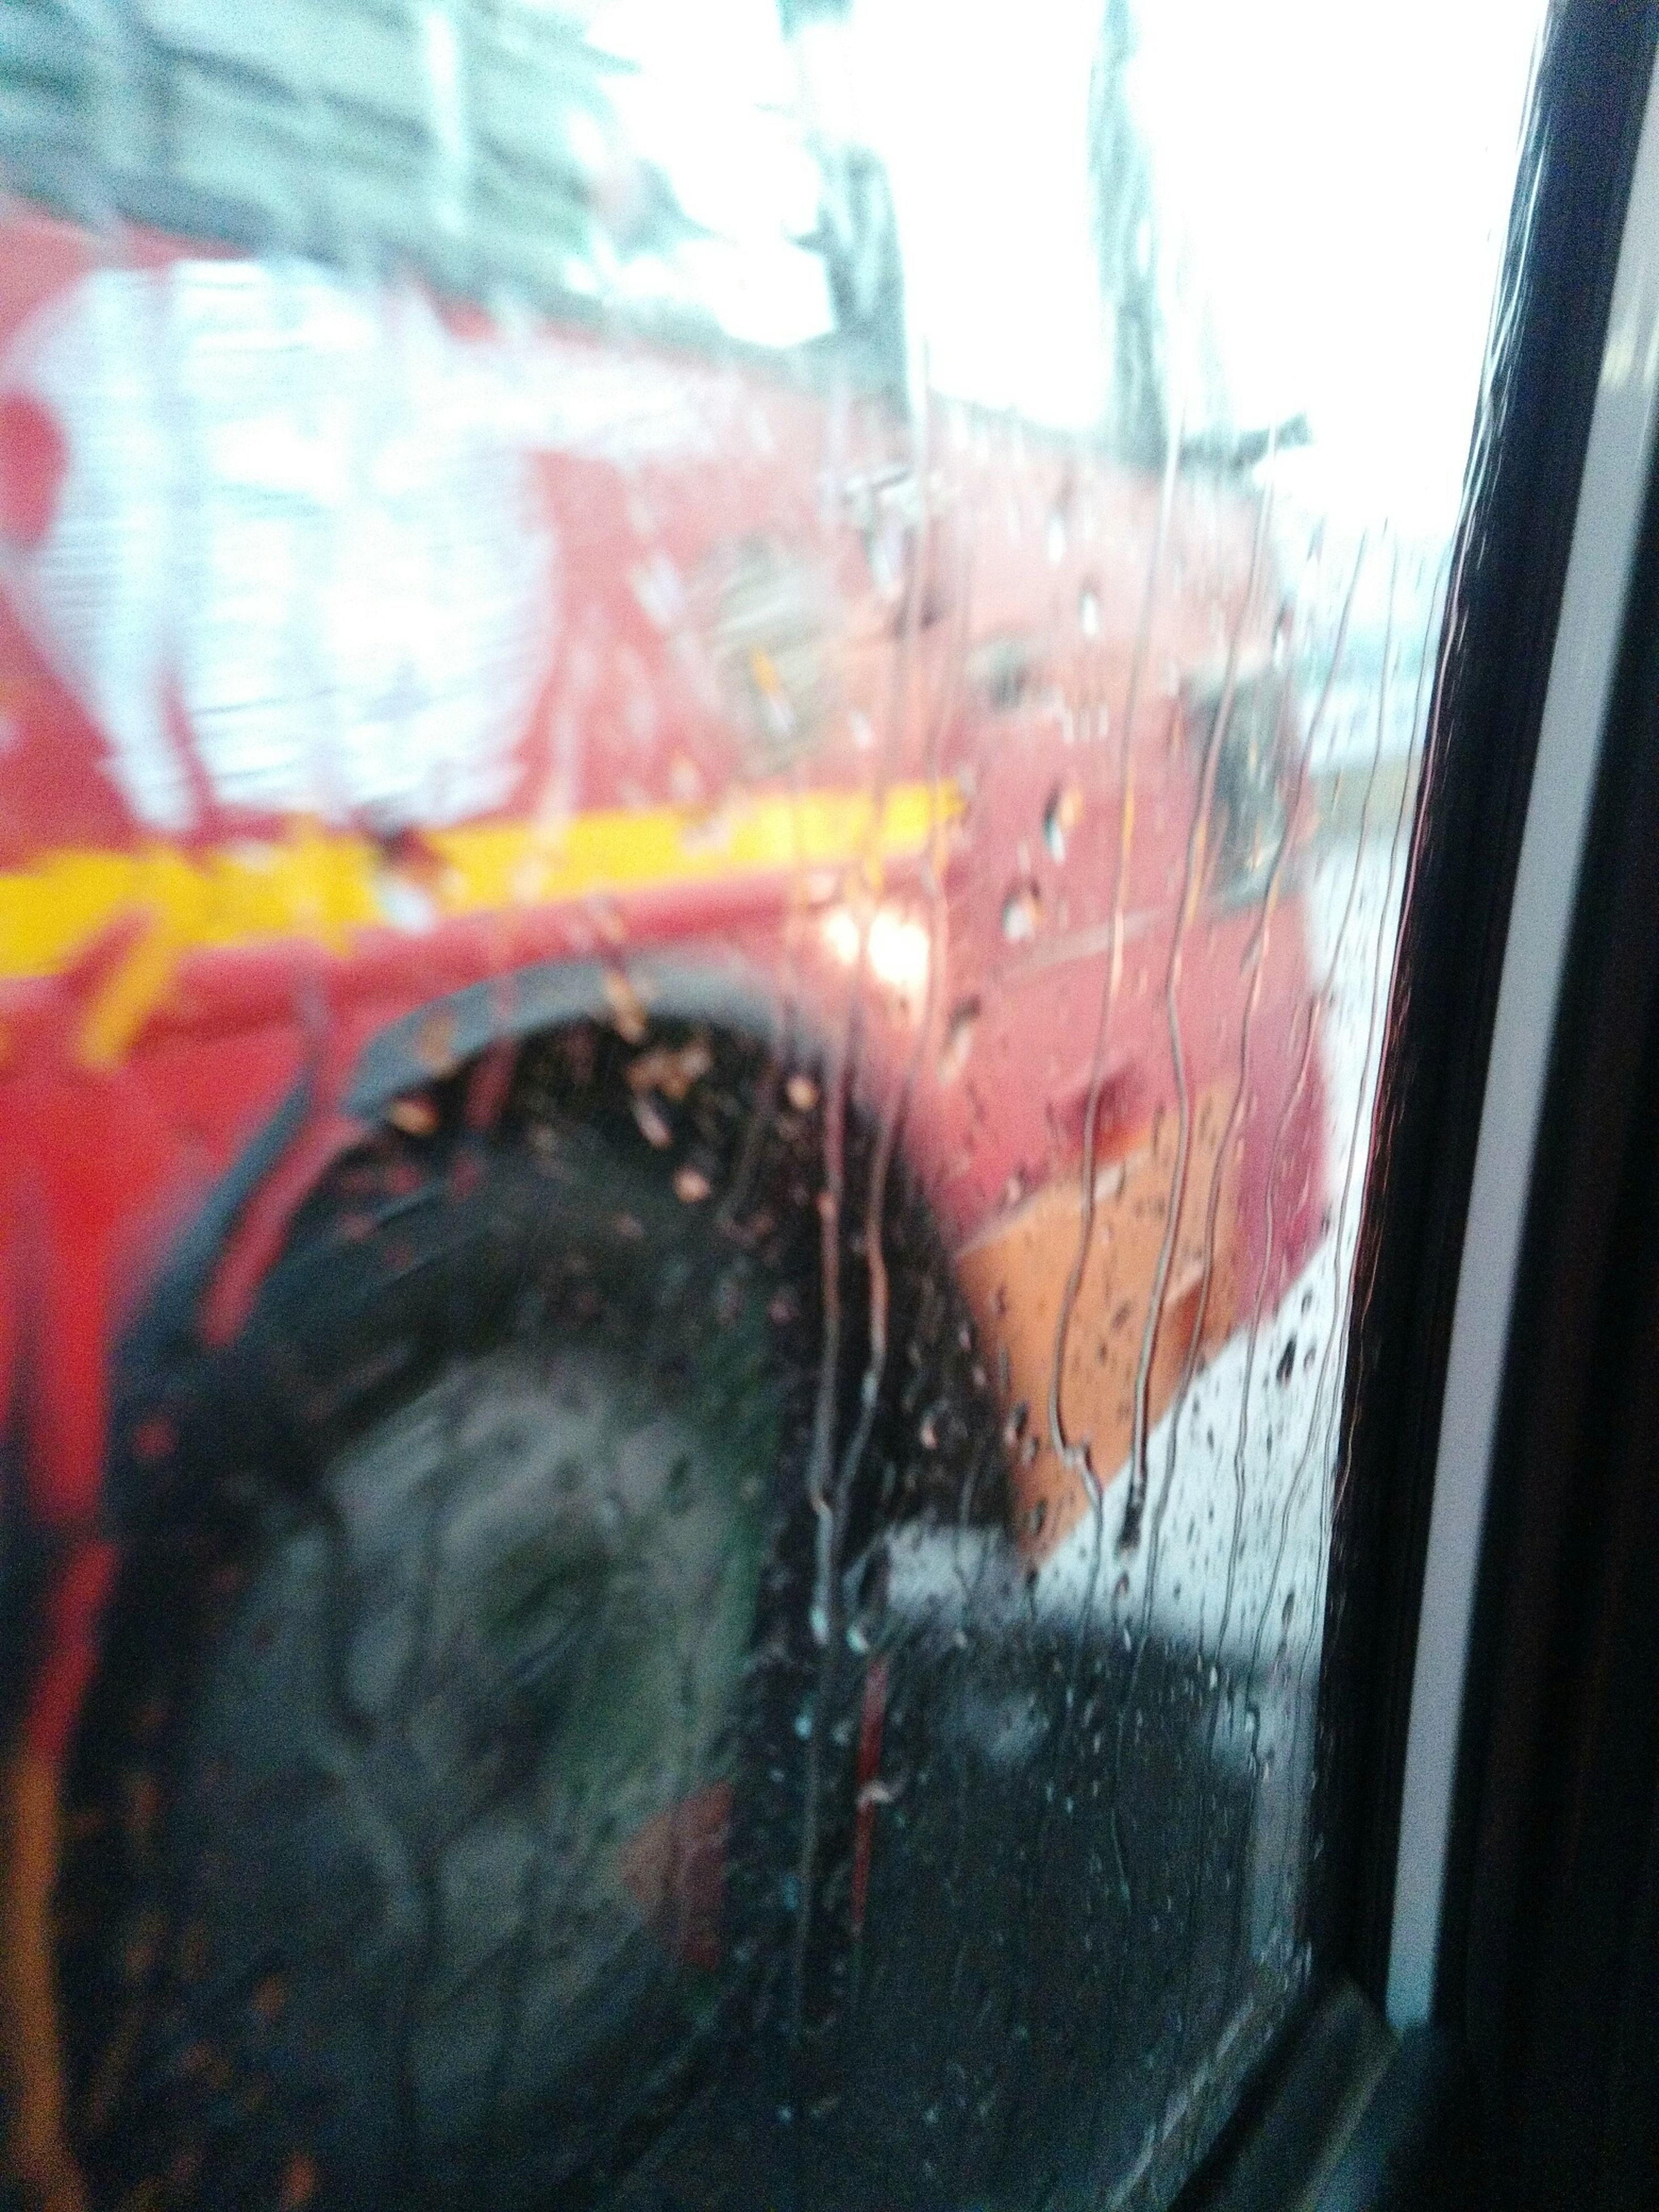 window, glass - material, transparent, indoors, vehicle interior, transportation, close-up, car, land vehicle, wet, mode of transport, reflection, car interior, looking through window, glass, part of, windshield, rain